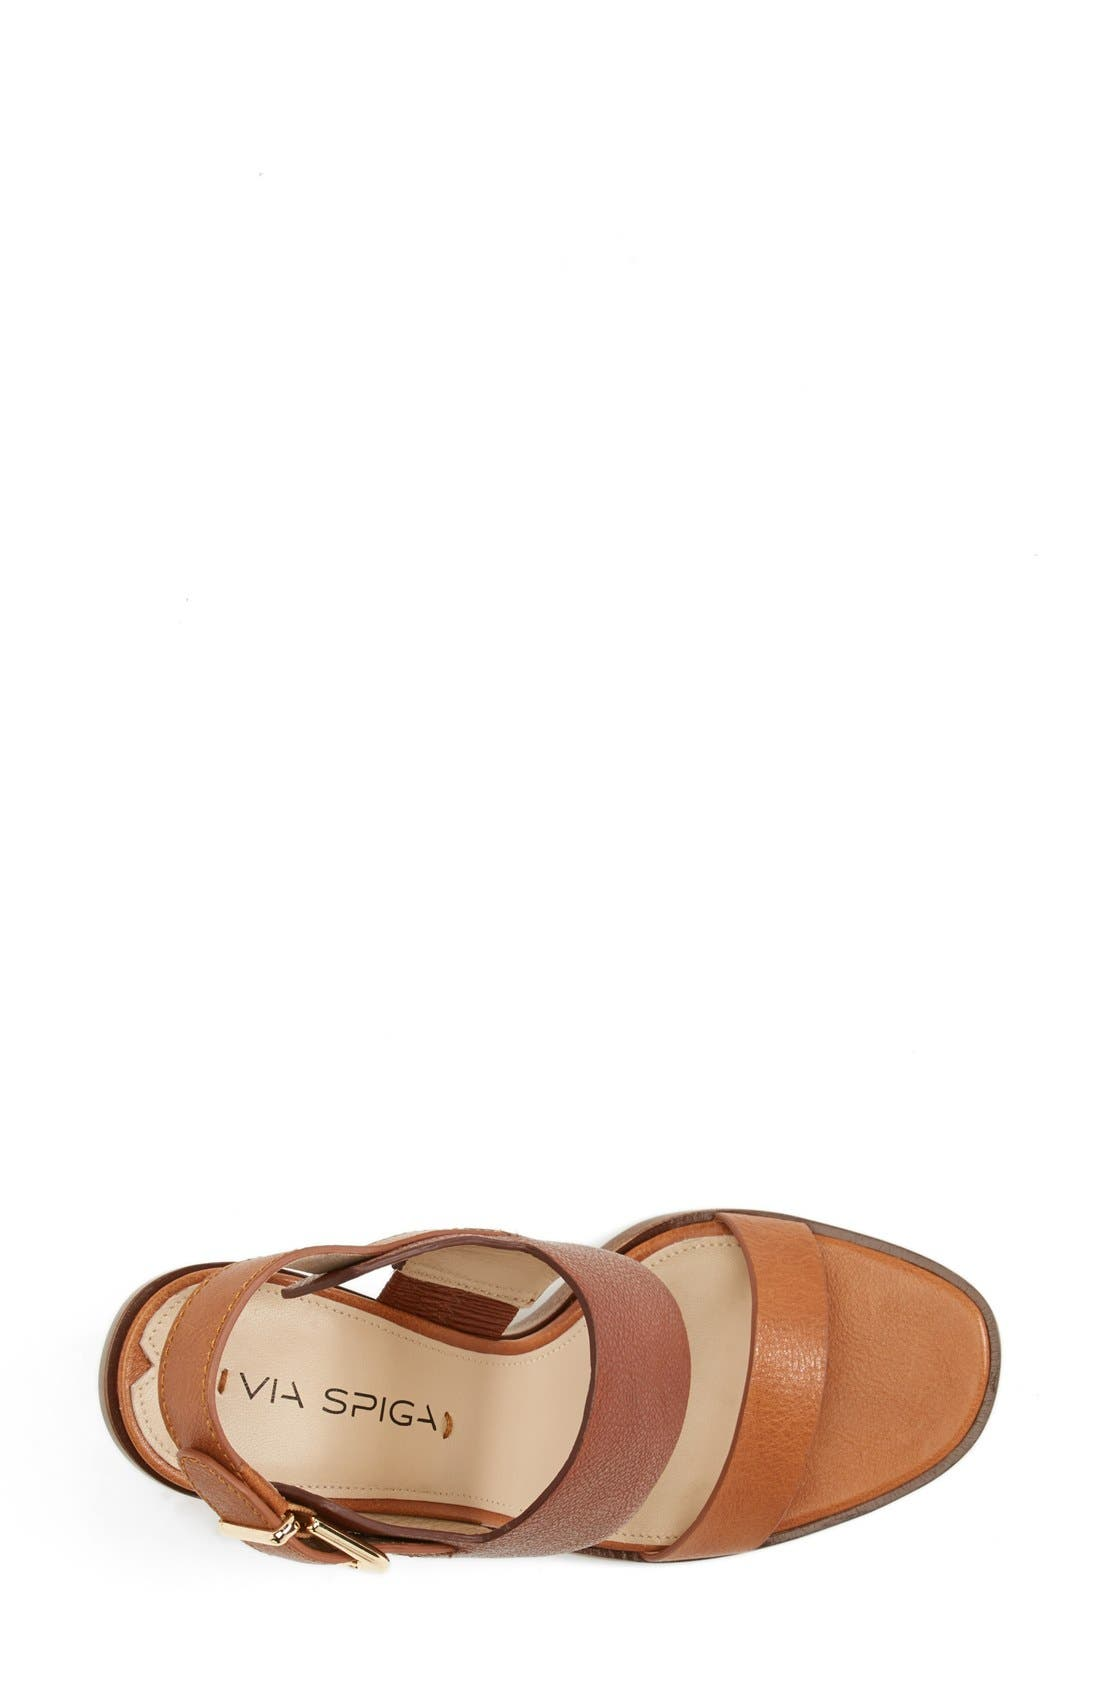 Alternate Image 3  - Via Spiga 'Baris' Leather Slingback Sandal (Women) (Nordstrom Exclusive)